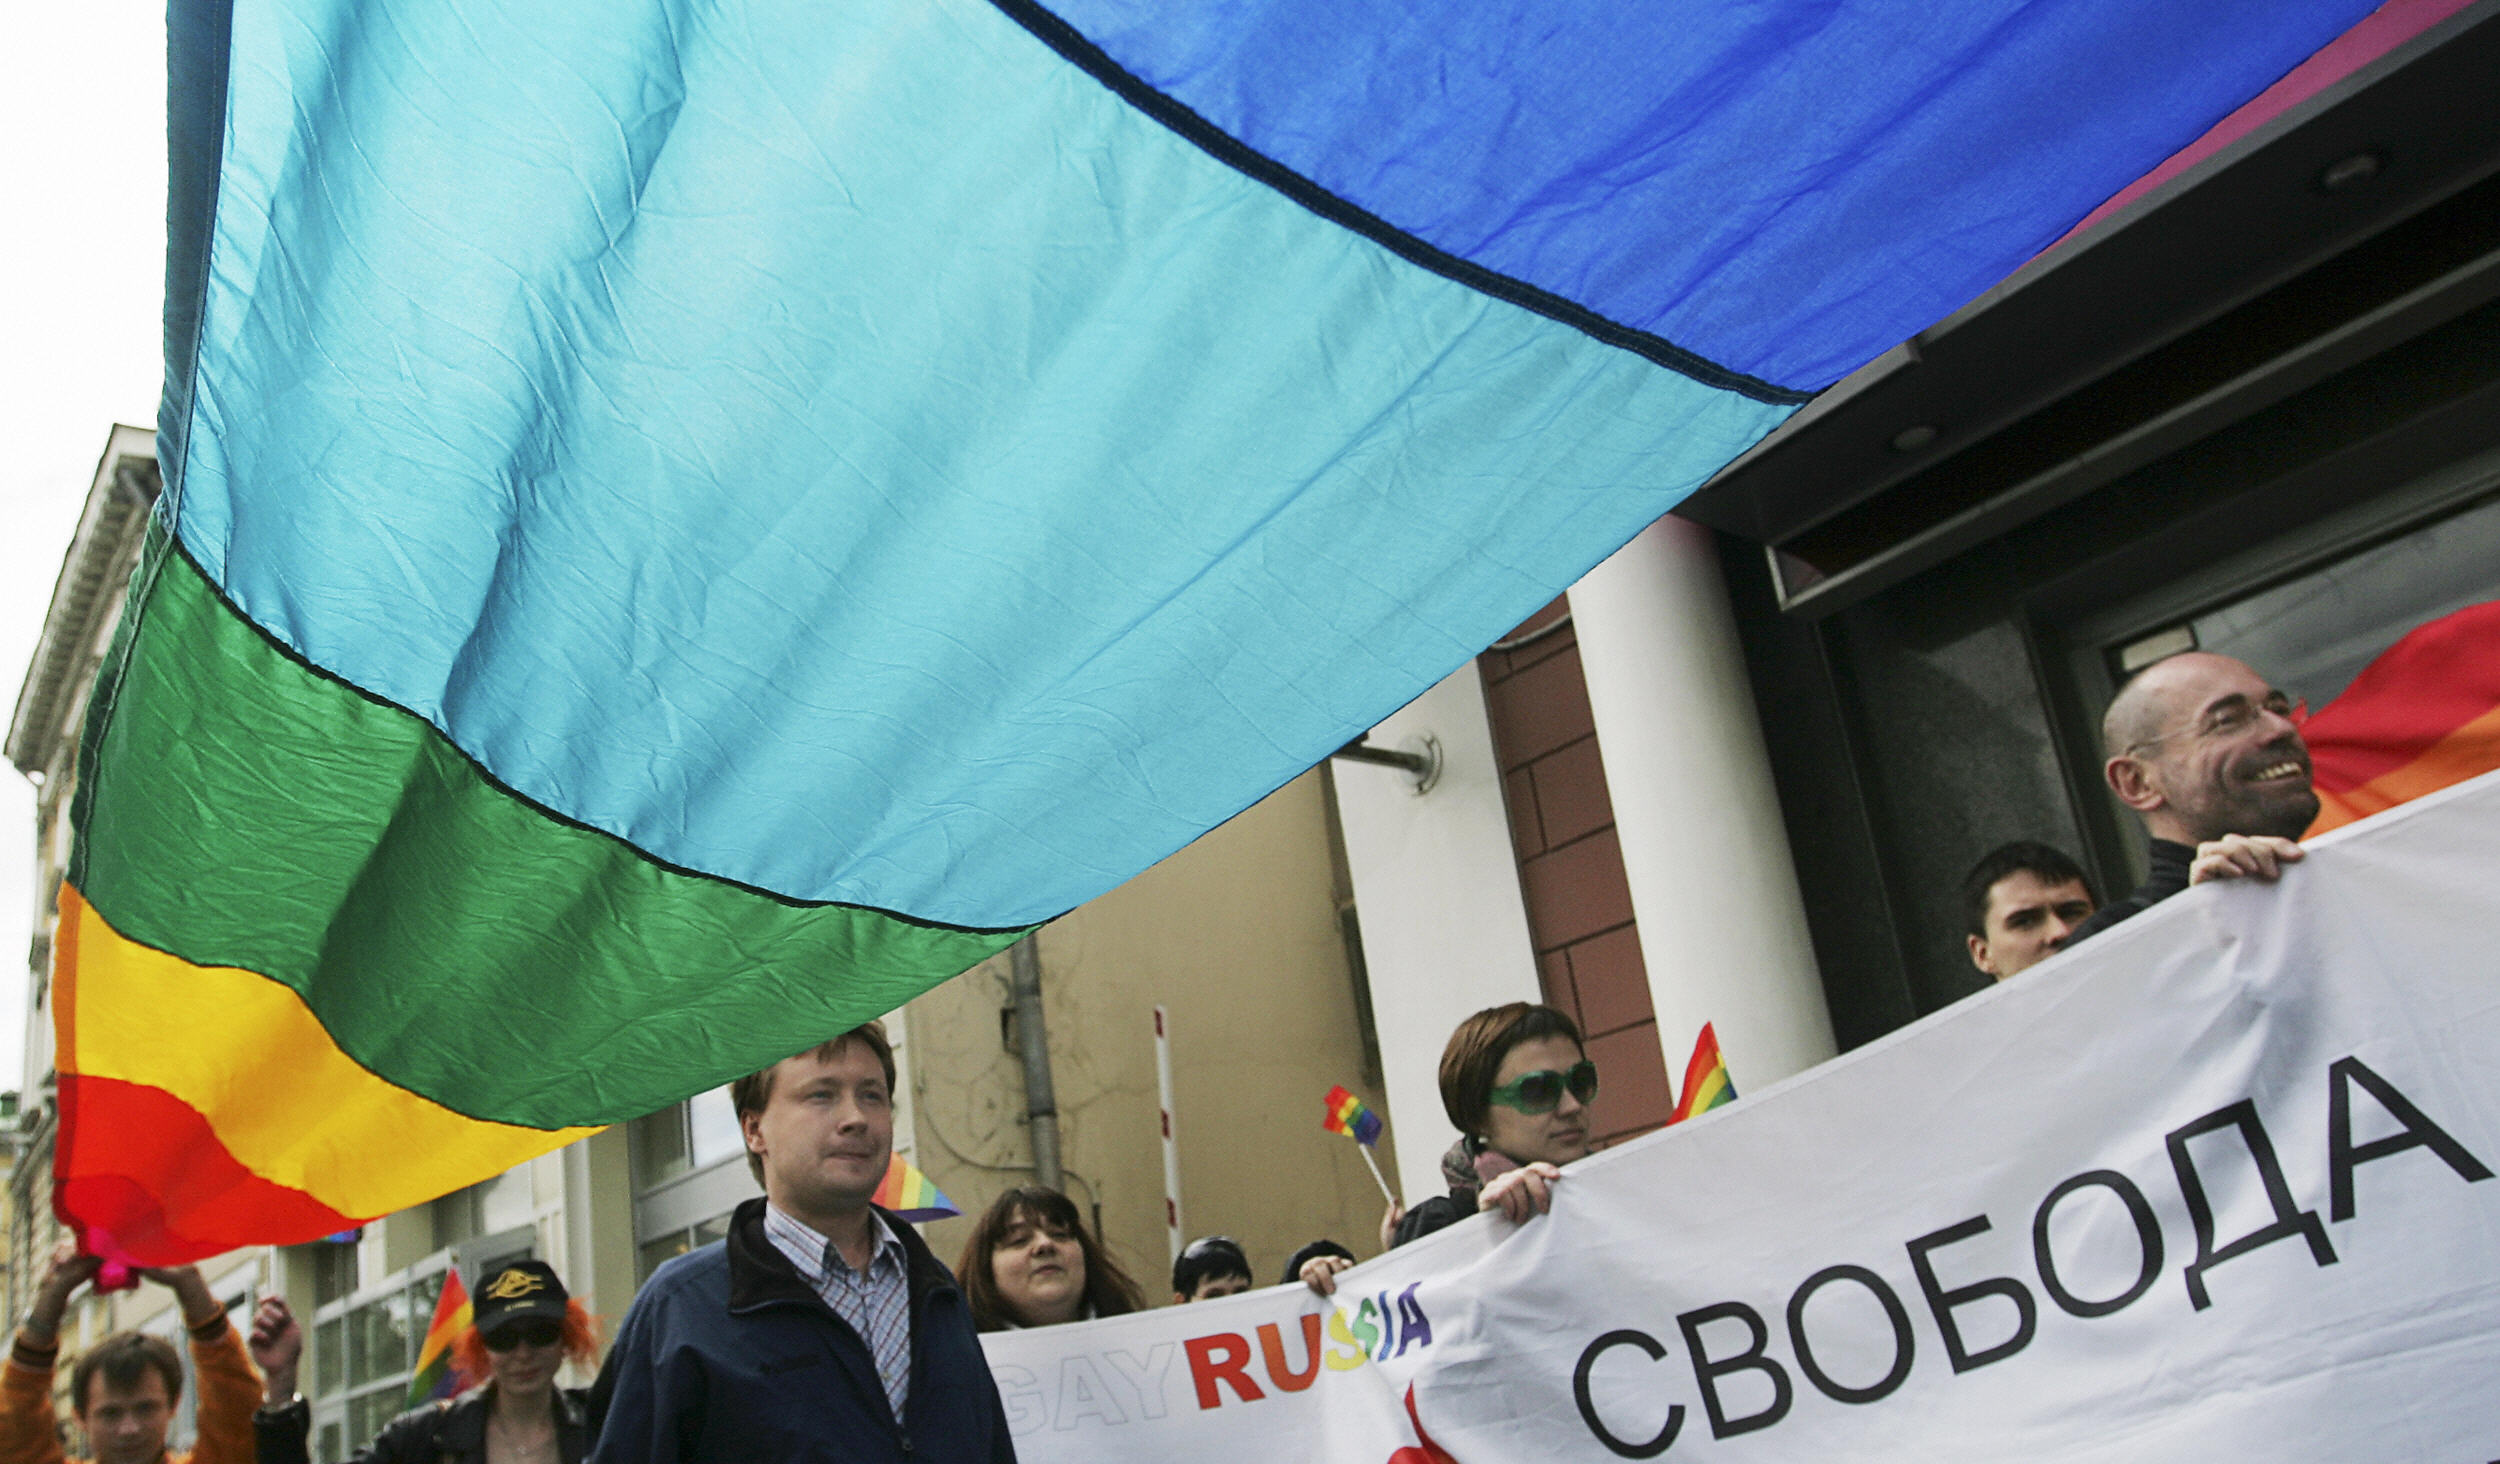 Members of the Russian gay community hold flags.